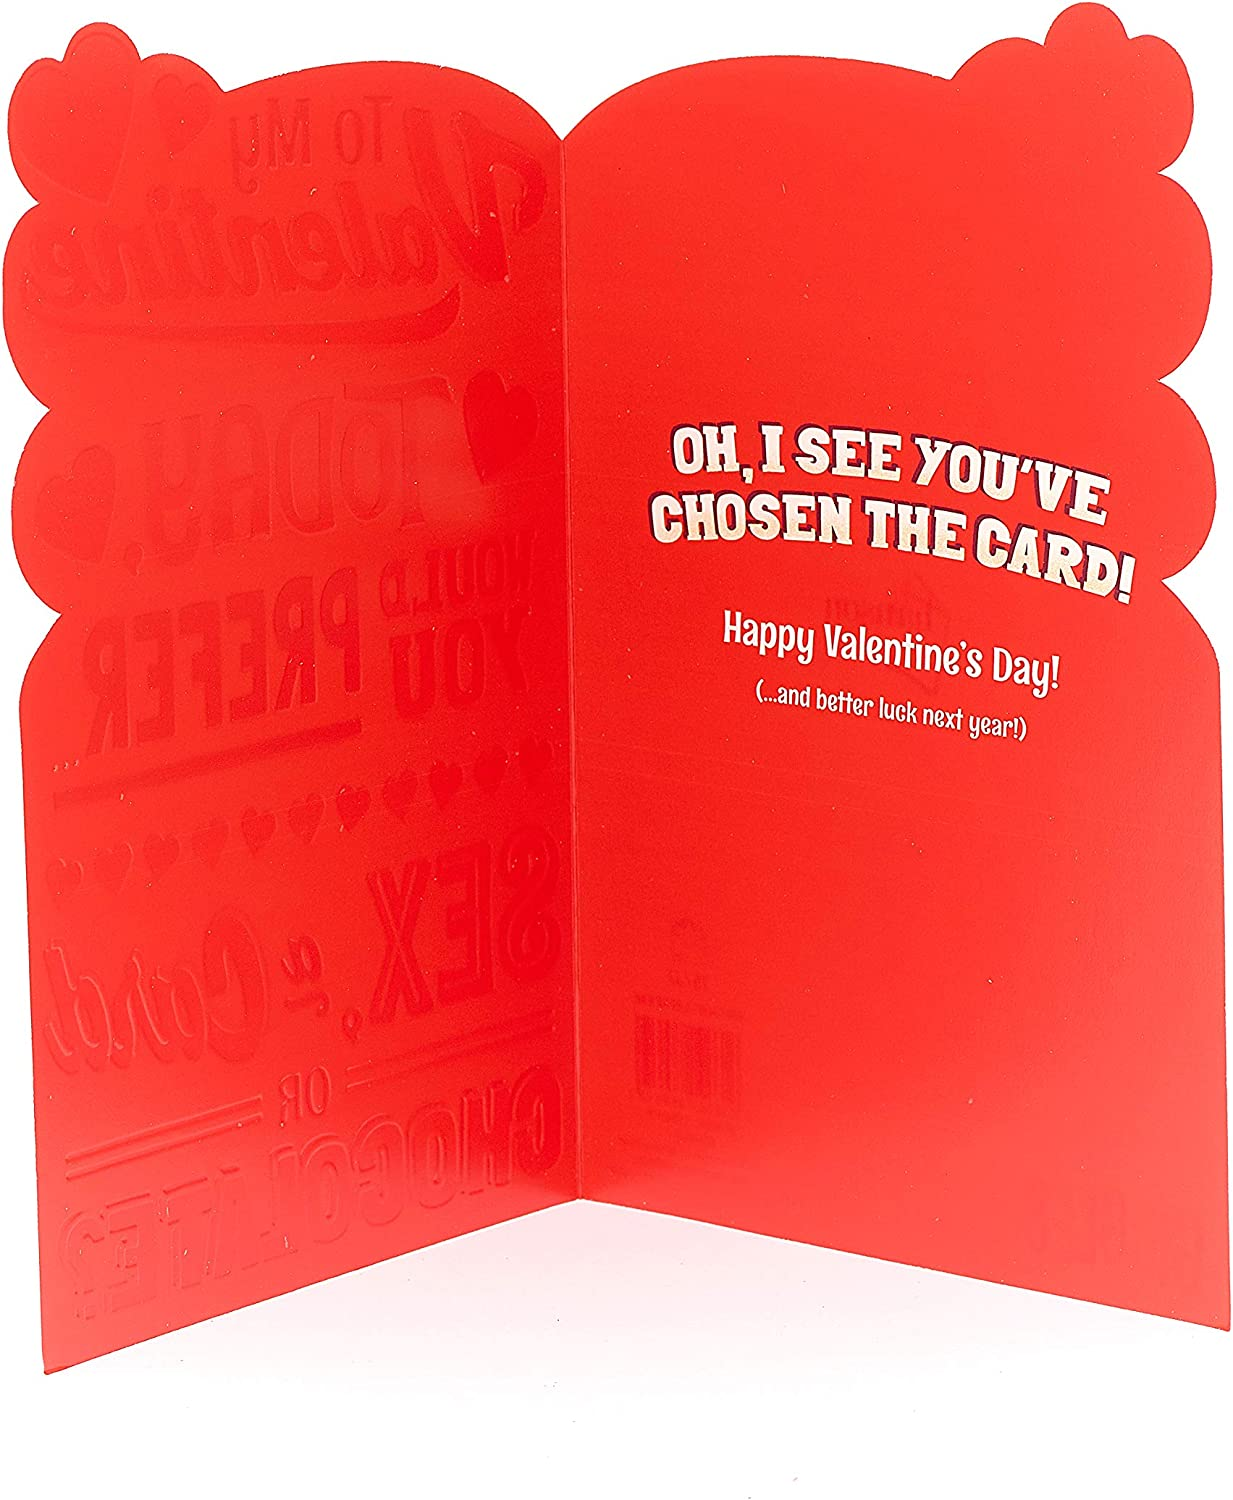 Valentines Gift Card Valentines Day Card for Him Valentines Day Card for Her Valentines Day Decorations Funny Valentines Day Card Valentines Day Card Valentines Gifts